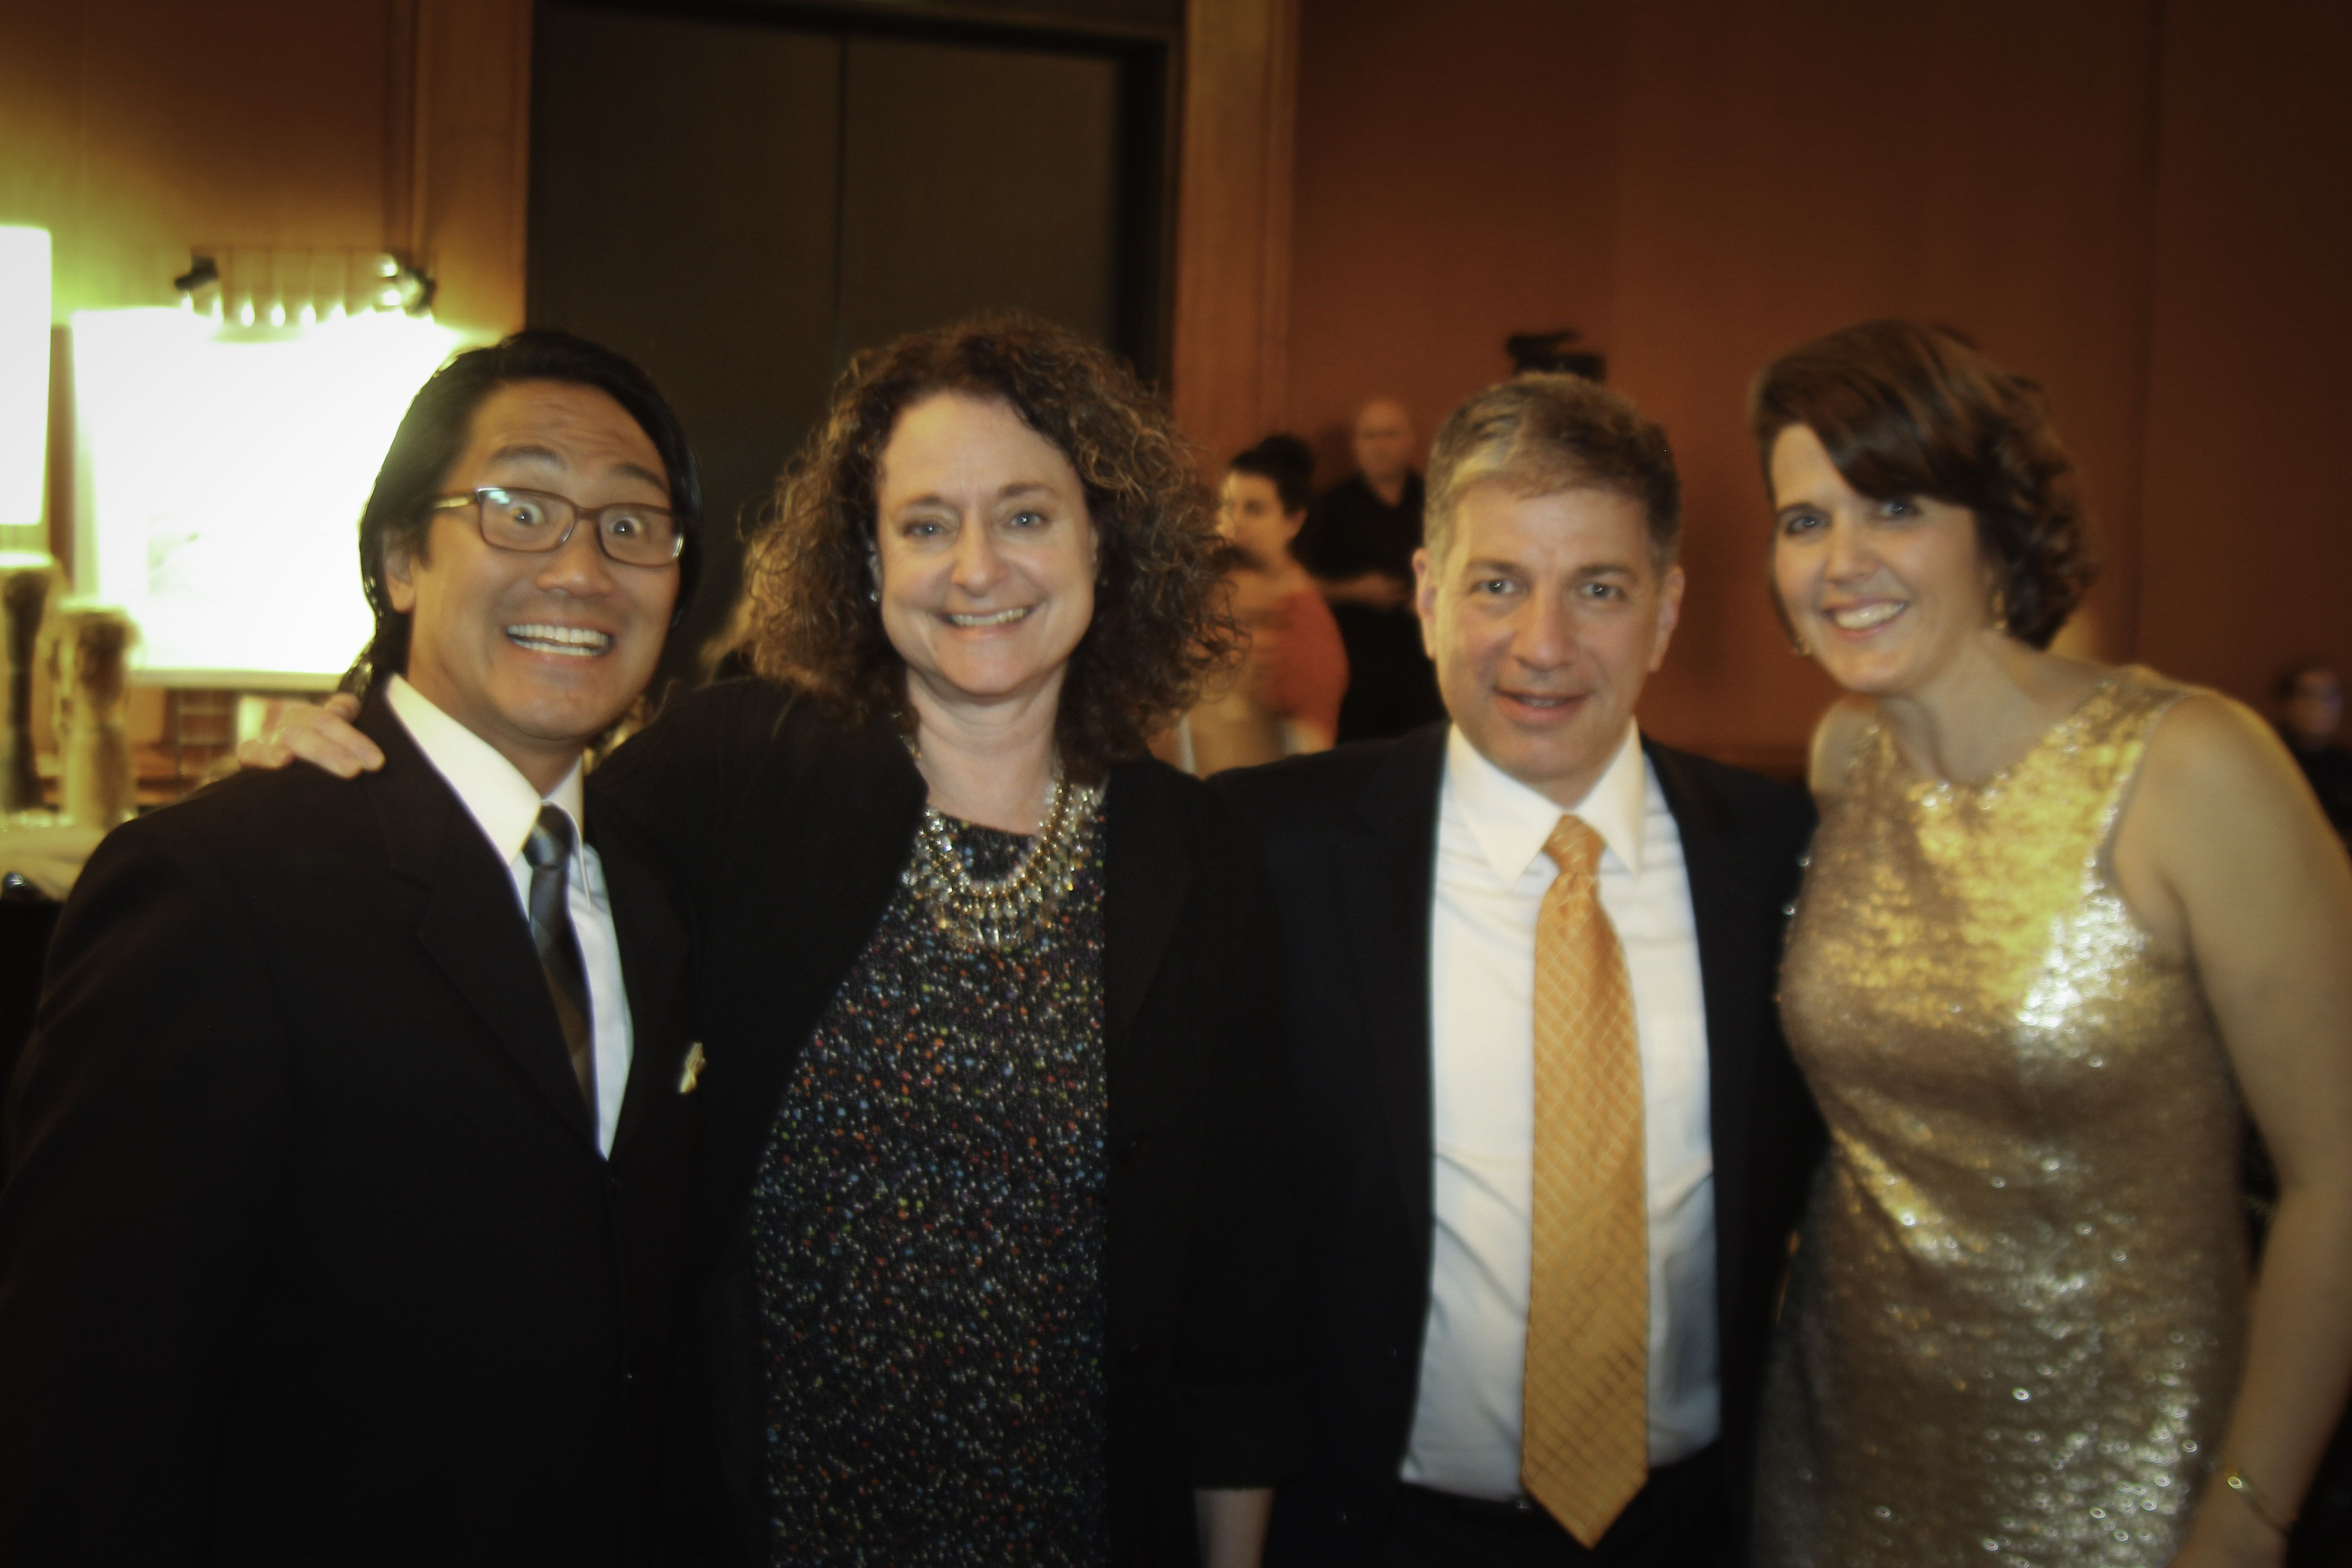 Executive Director Lisa Aquino Far Right And Her Husband Chris Far Left With Anchorage Mayor Ethan Berkowitz And Charity Executive Director Social Services